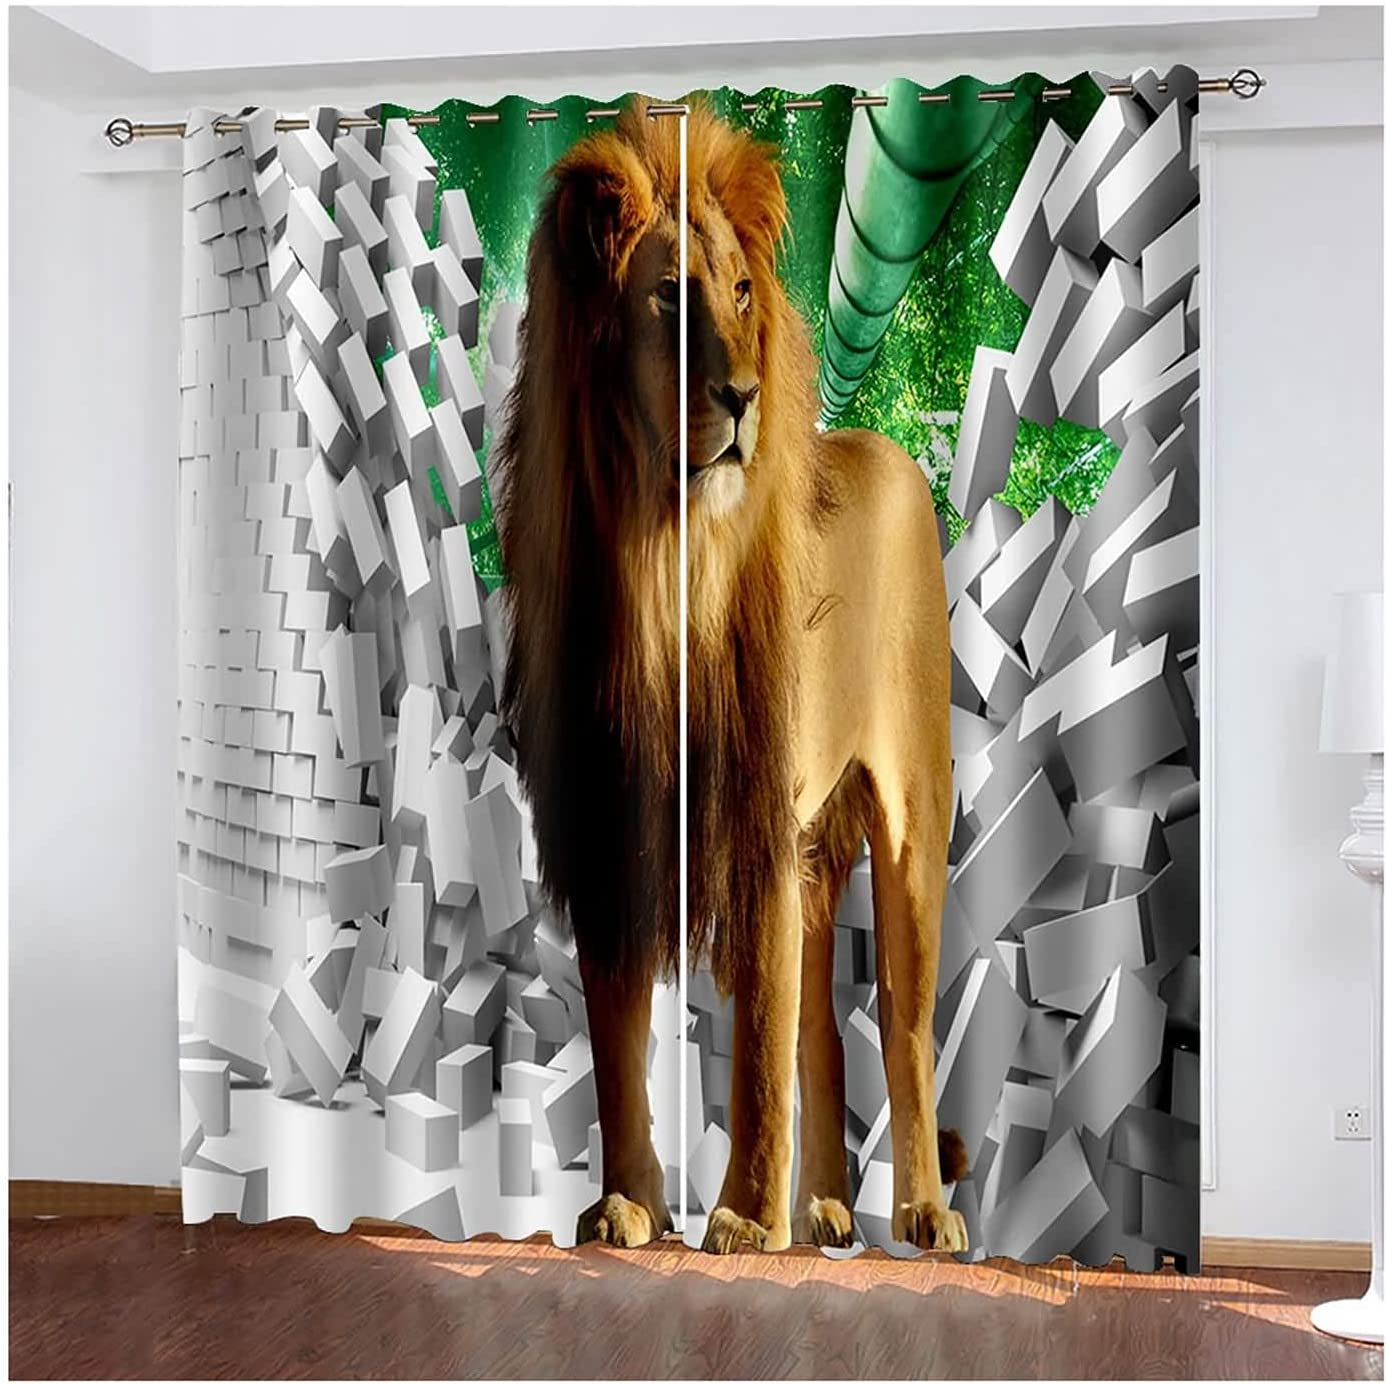 Curtain for Living Room Panels 2 Drapes 35% OFF New Shipping Free Shipping Darkeni